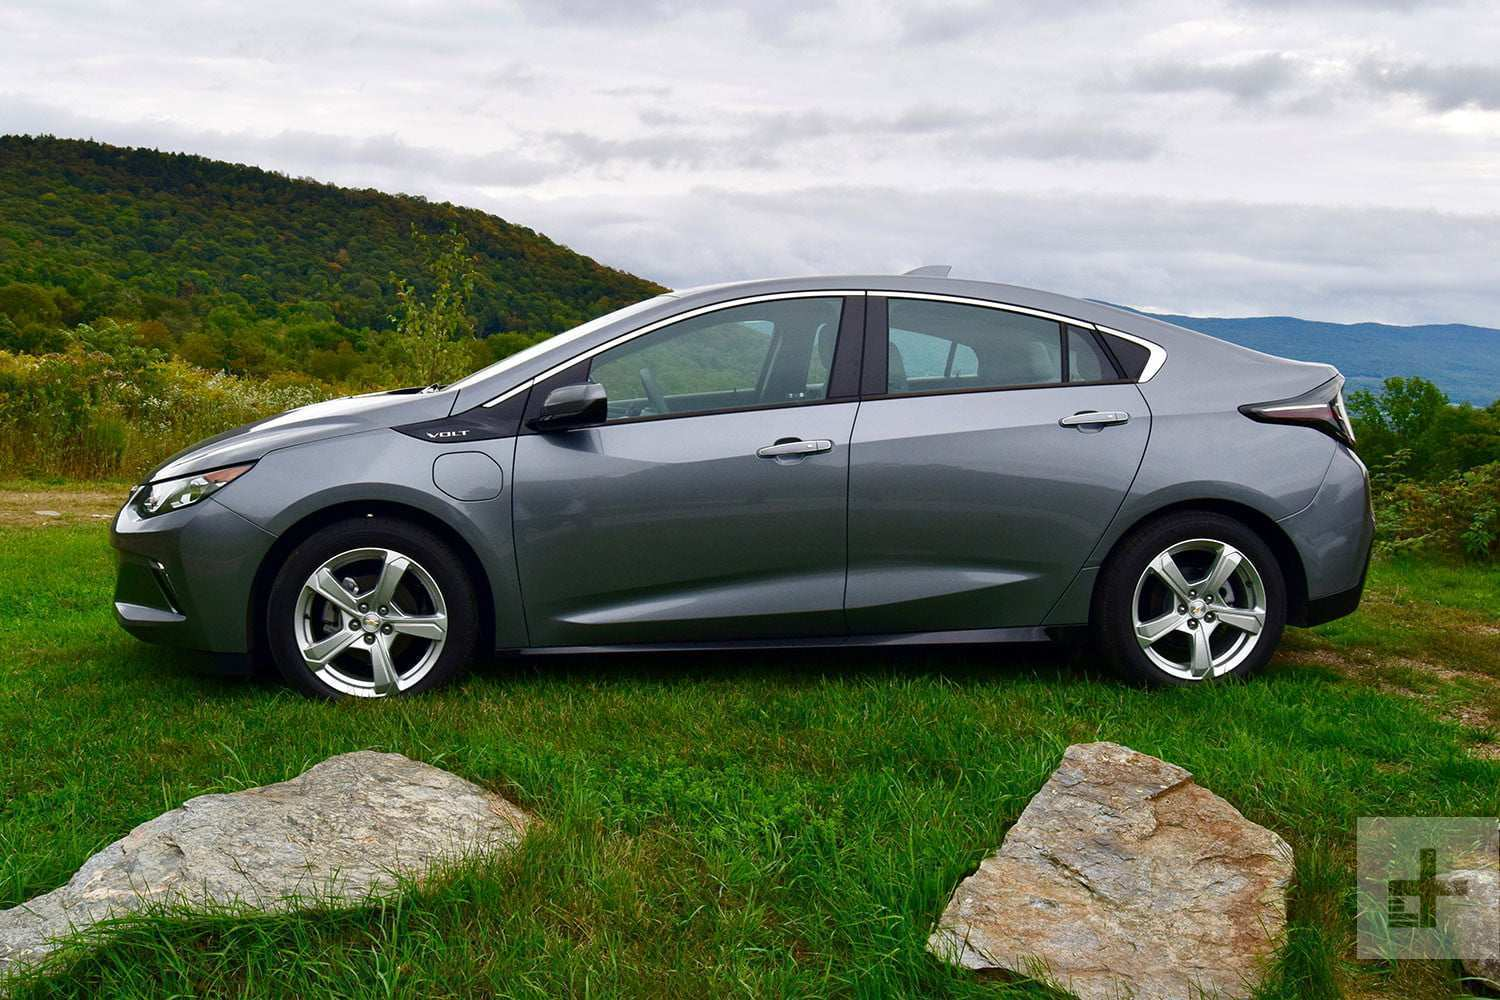 85 All New 2019 Chevrolet Volt Exterior And Interior